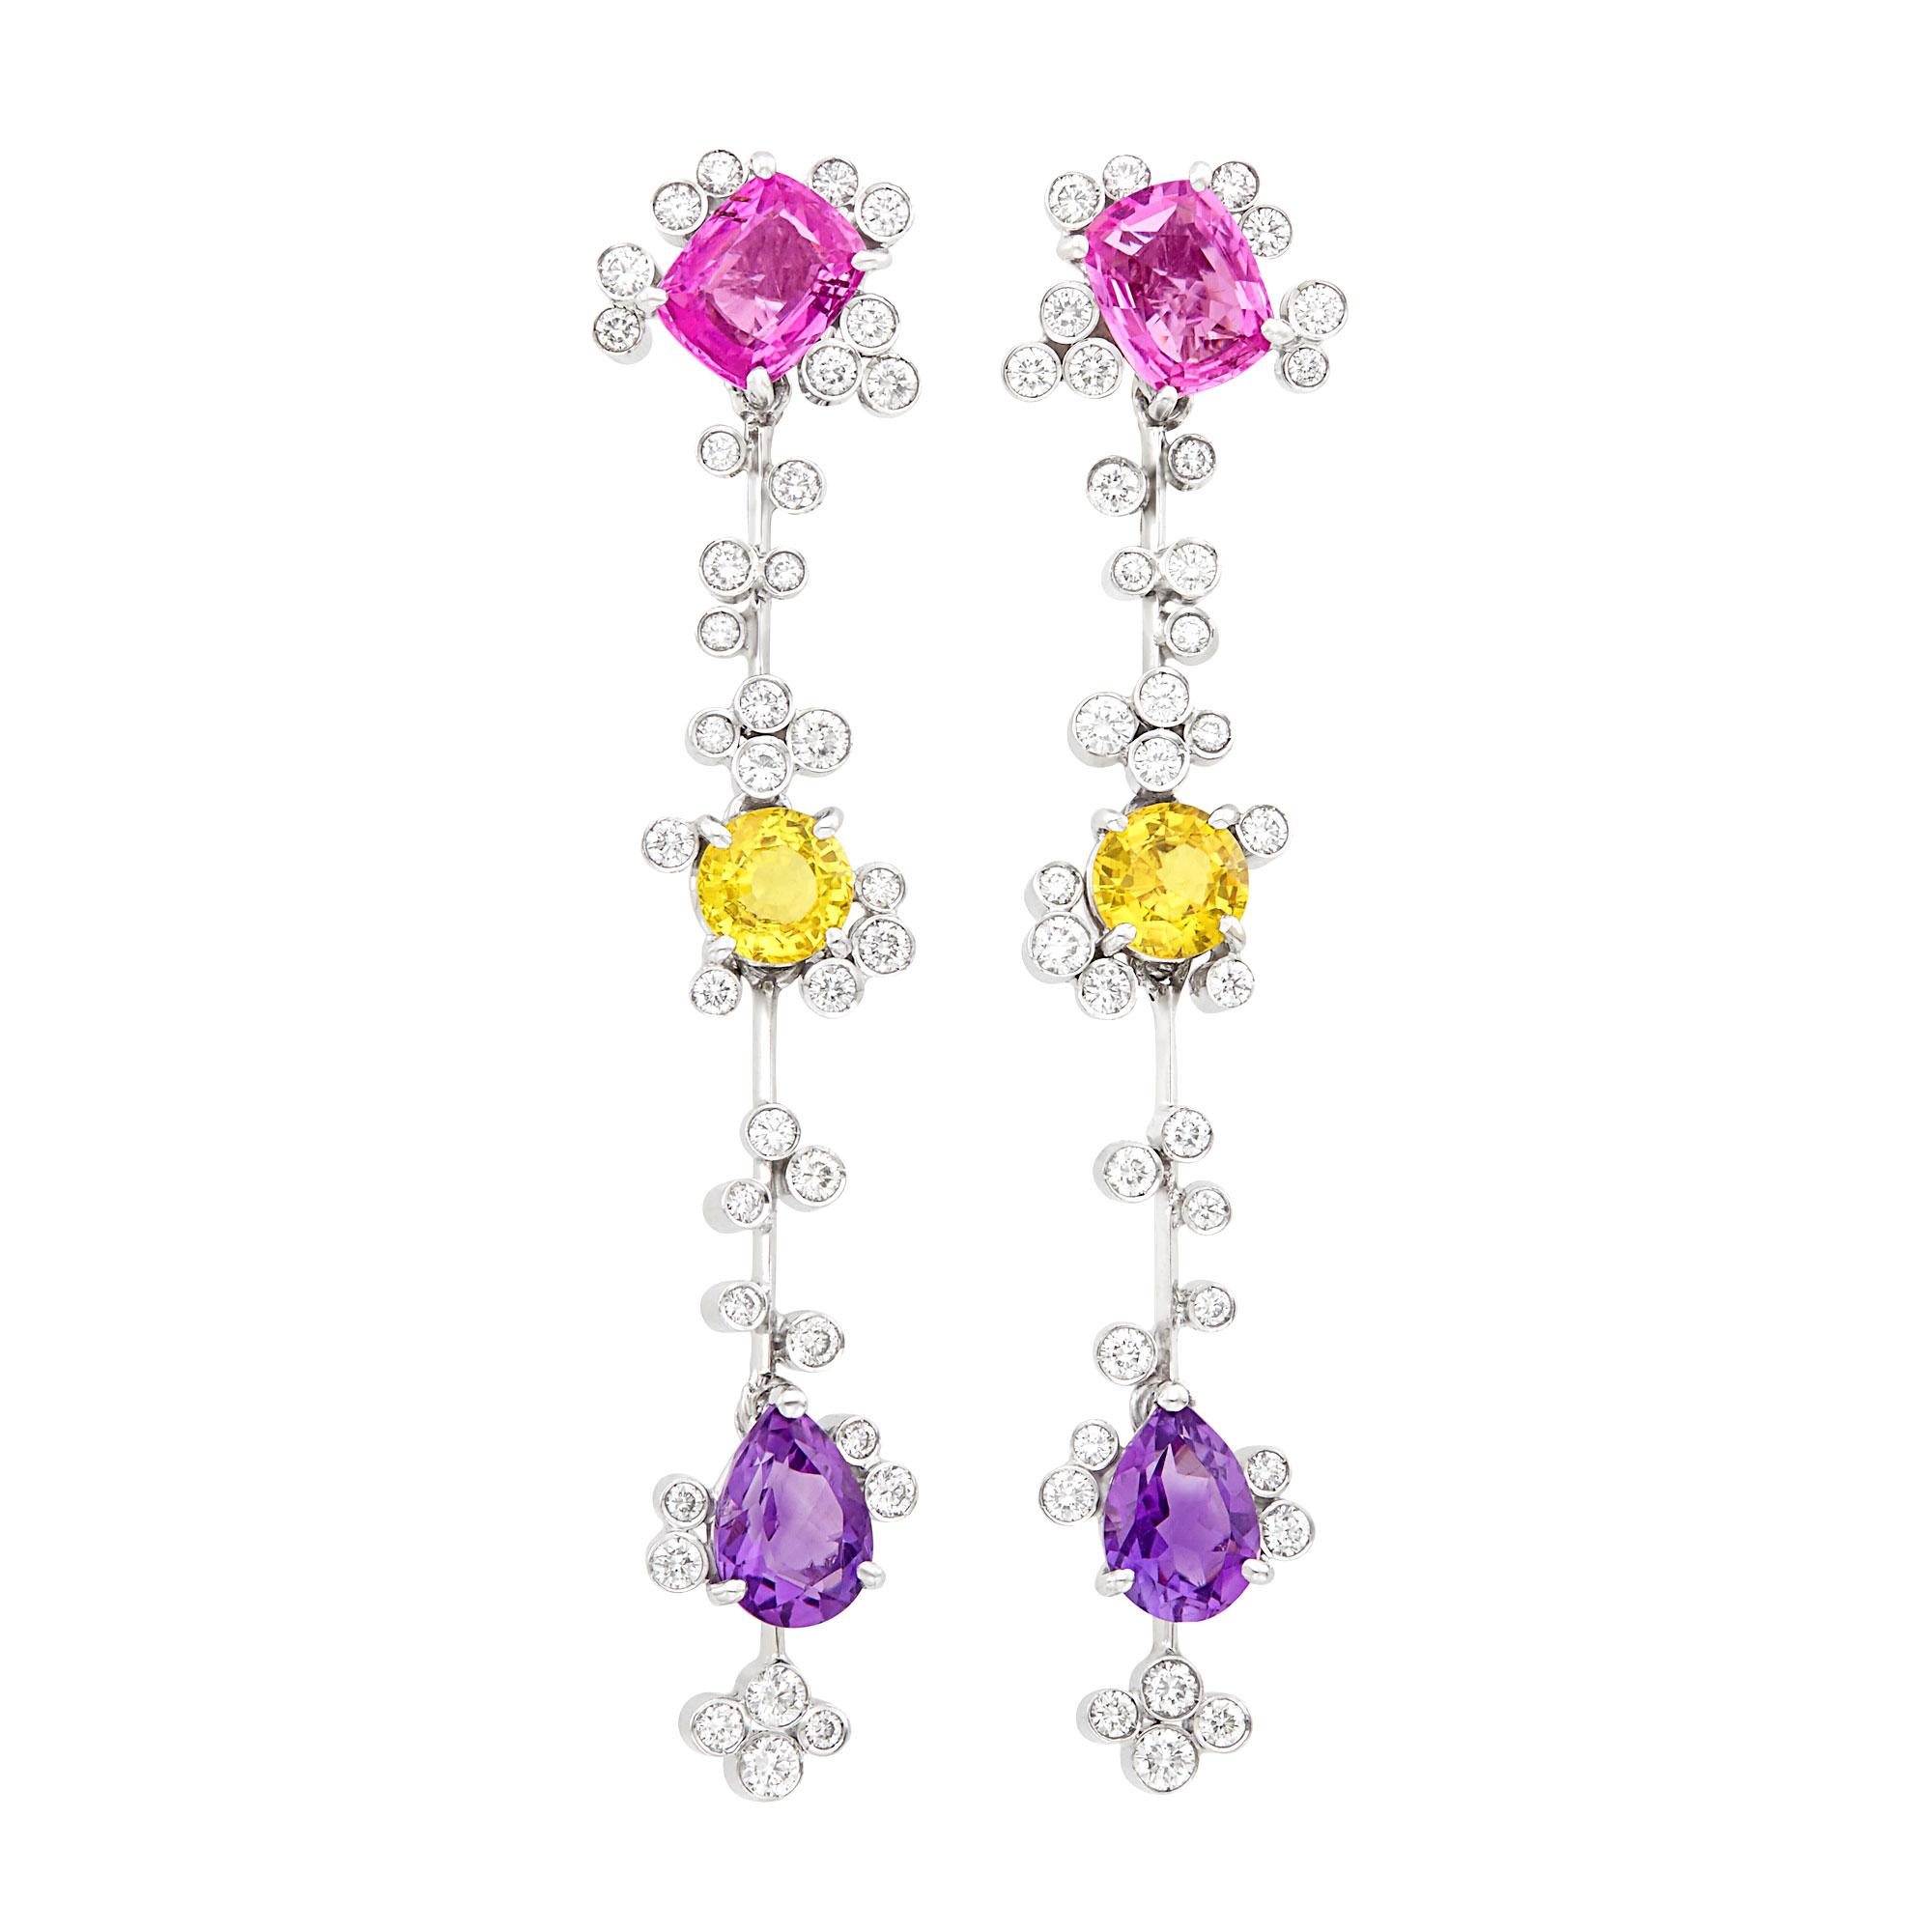 Lot image - Pair of White Gold, Multicolored Sapphire and Diamond Pendant-Earrings